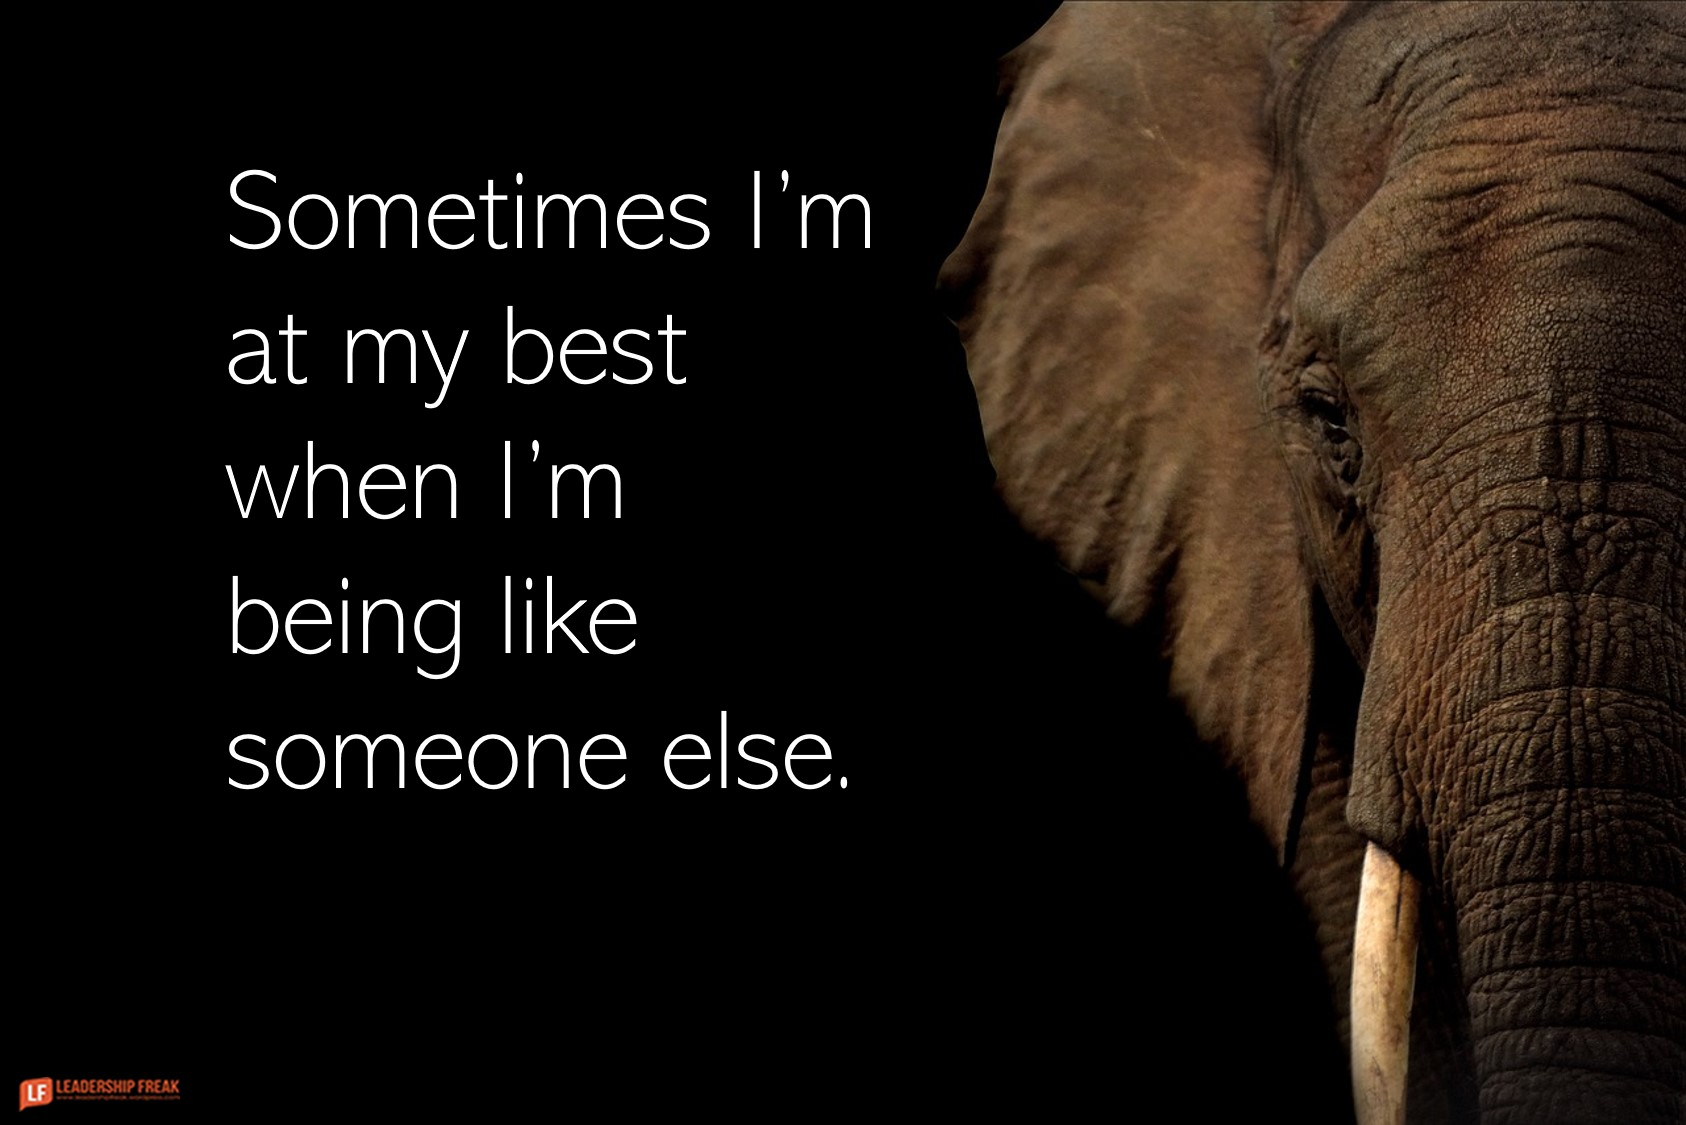 Elephant  Sometimes I'm at my best when I'm being like someone else.